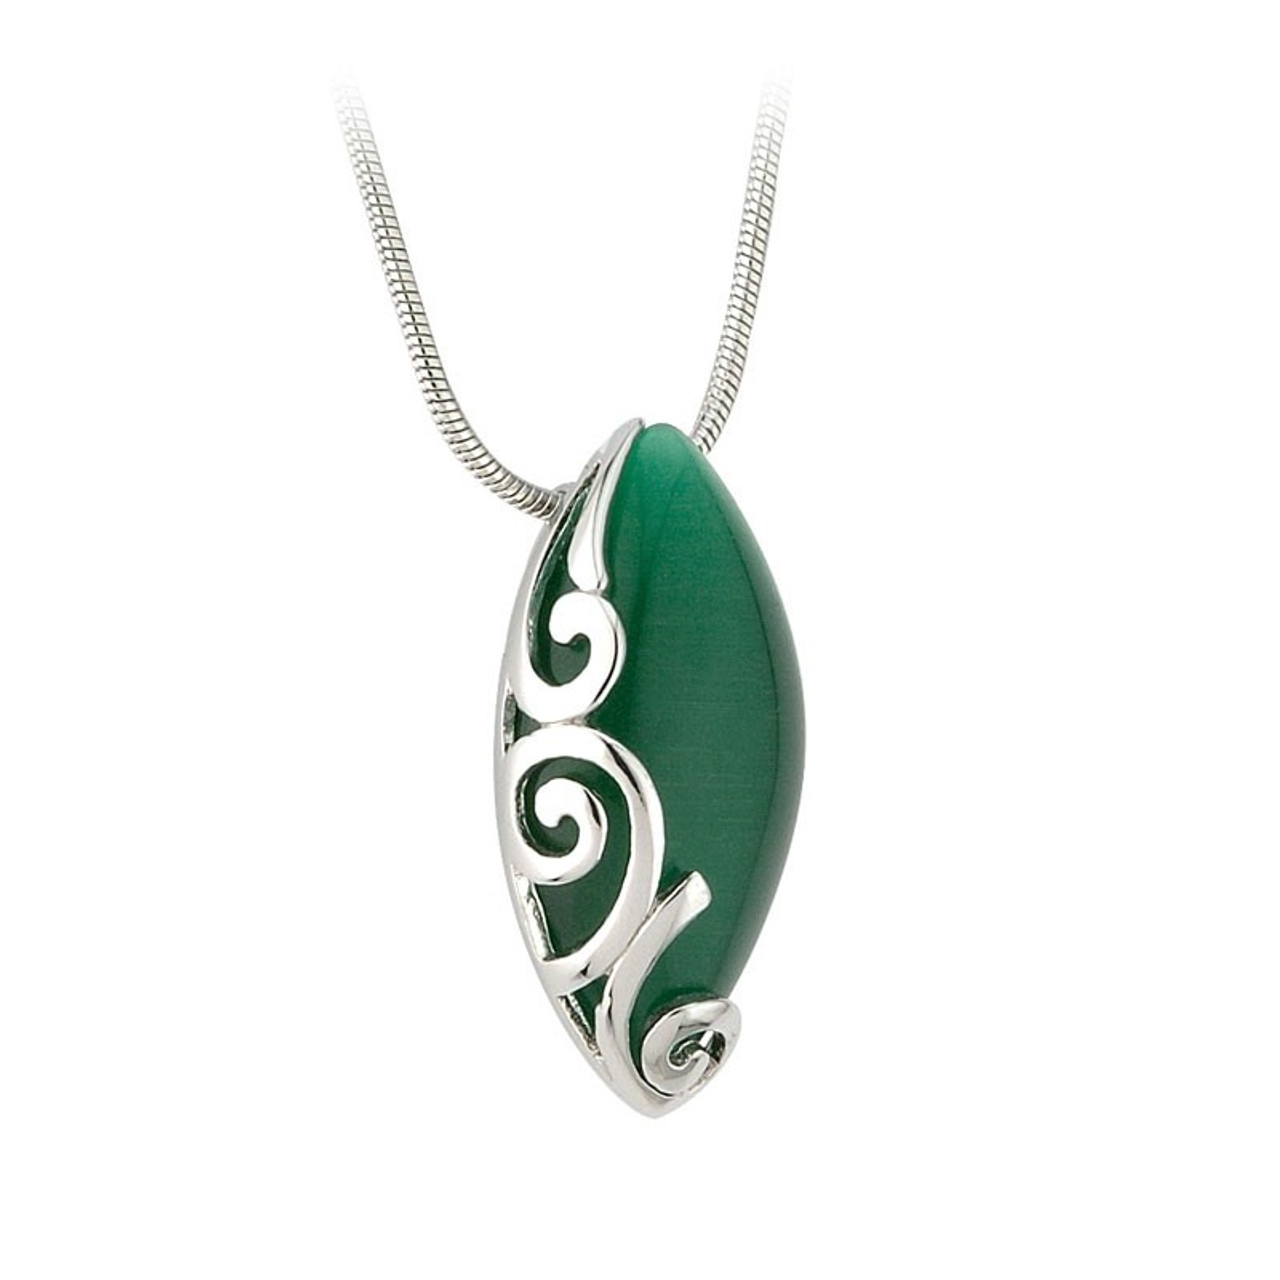 Rhodium Celtic Silver and Green Oval Pendant